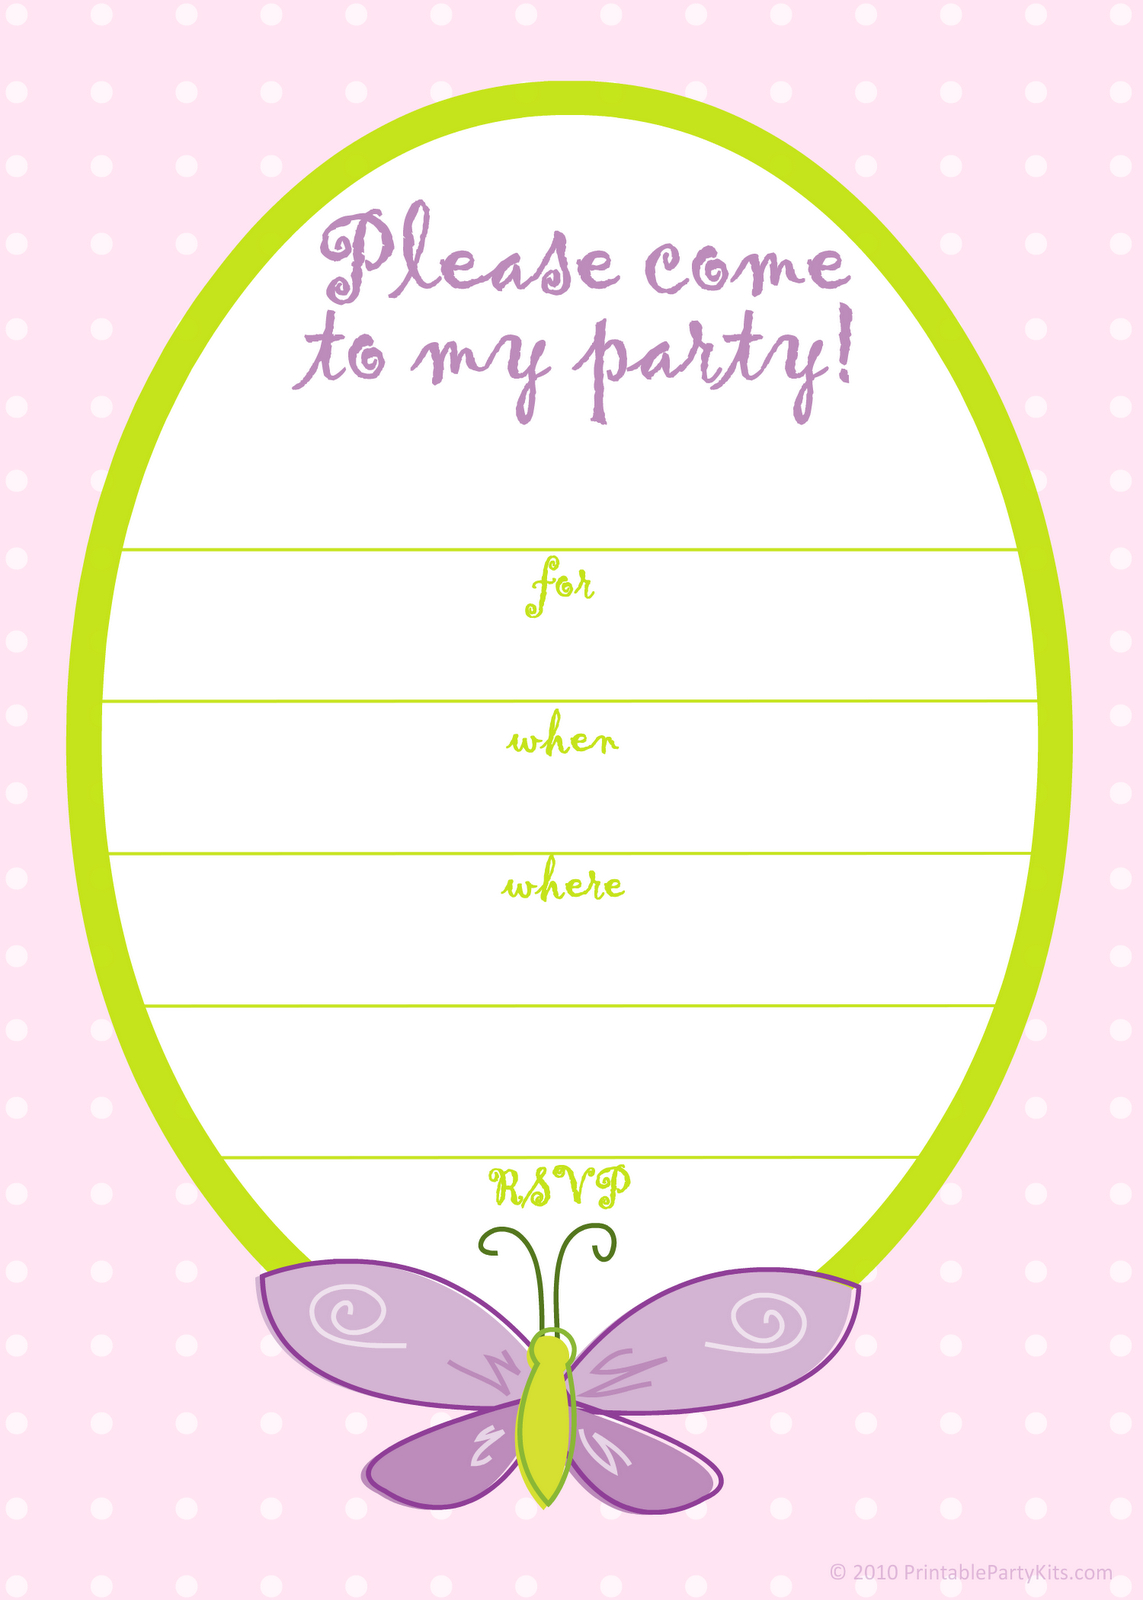 Free Printable Party Invitations: Free Pink Butterfly Girls Birthday - Free Printable Girl Birthday Invitations